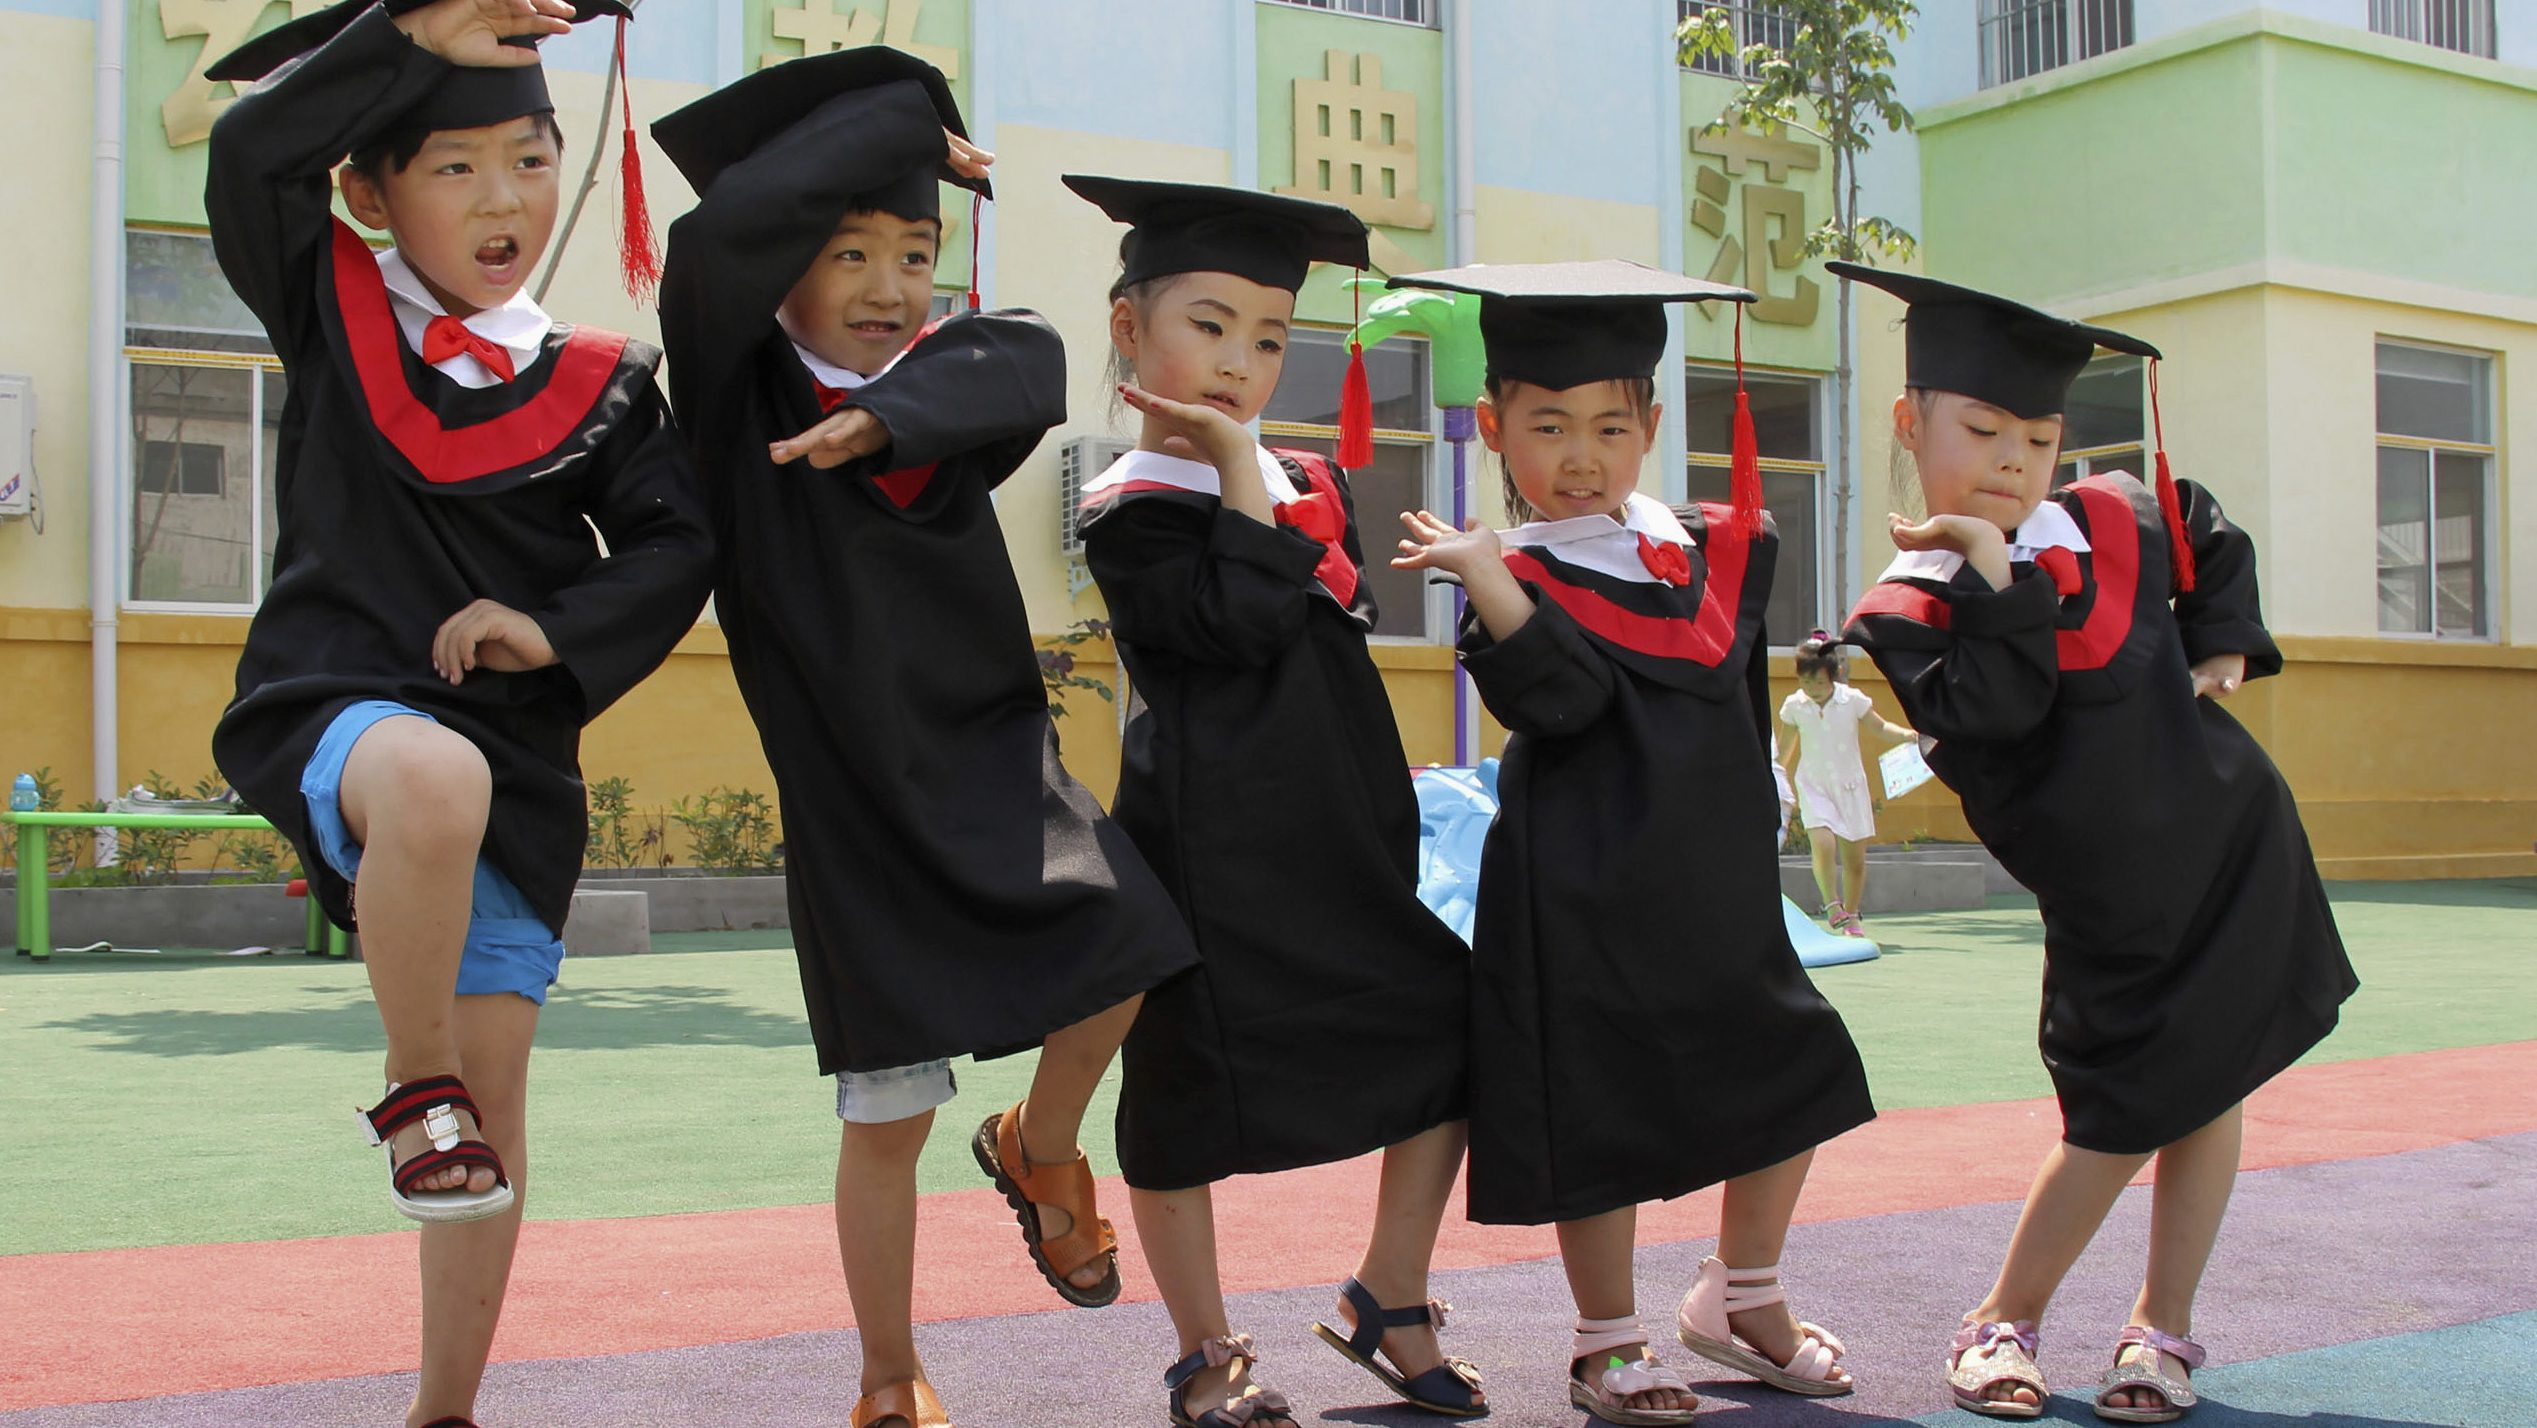 Children in gowns and mortarboards pose for pictures during their kindergarten graduation ceremony, in Wenxian county, Henan province July 2, 2014. Picture taken July 2, 2014. REUTERS/Stringer (CHINA - Tags: SOCIETY EDUCATION TPX IMAGES OF THE DAY) CHINA OUT. NO COMMERCIAL OR EDITORIAL SALES IN CHINA - RTR3WW0Z